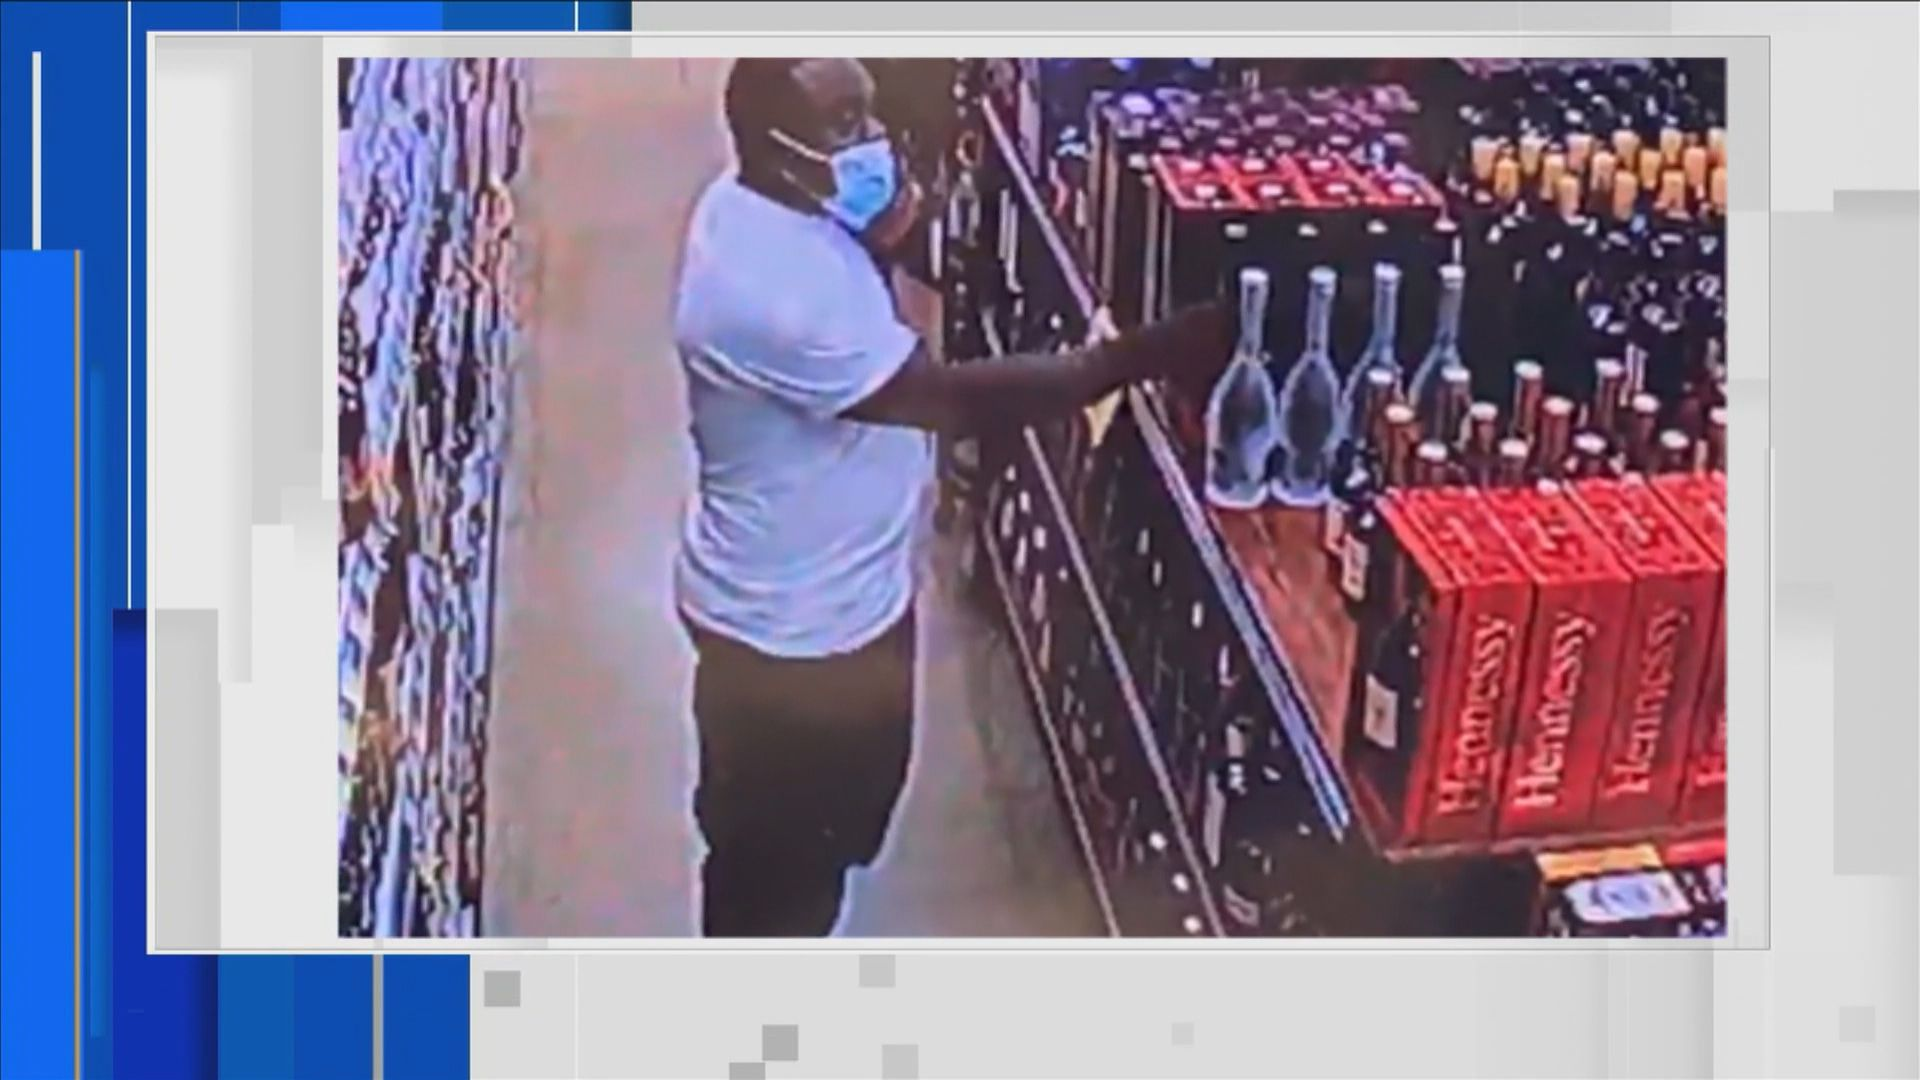 Surveillance video shows a man stealing from a liquor store on Thursday in Miami.